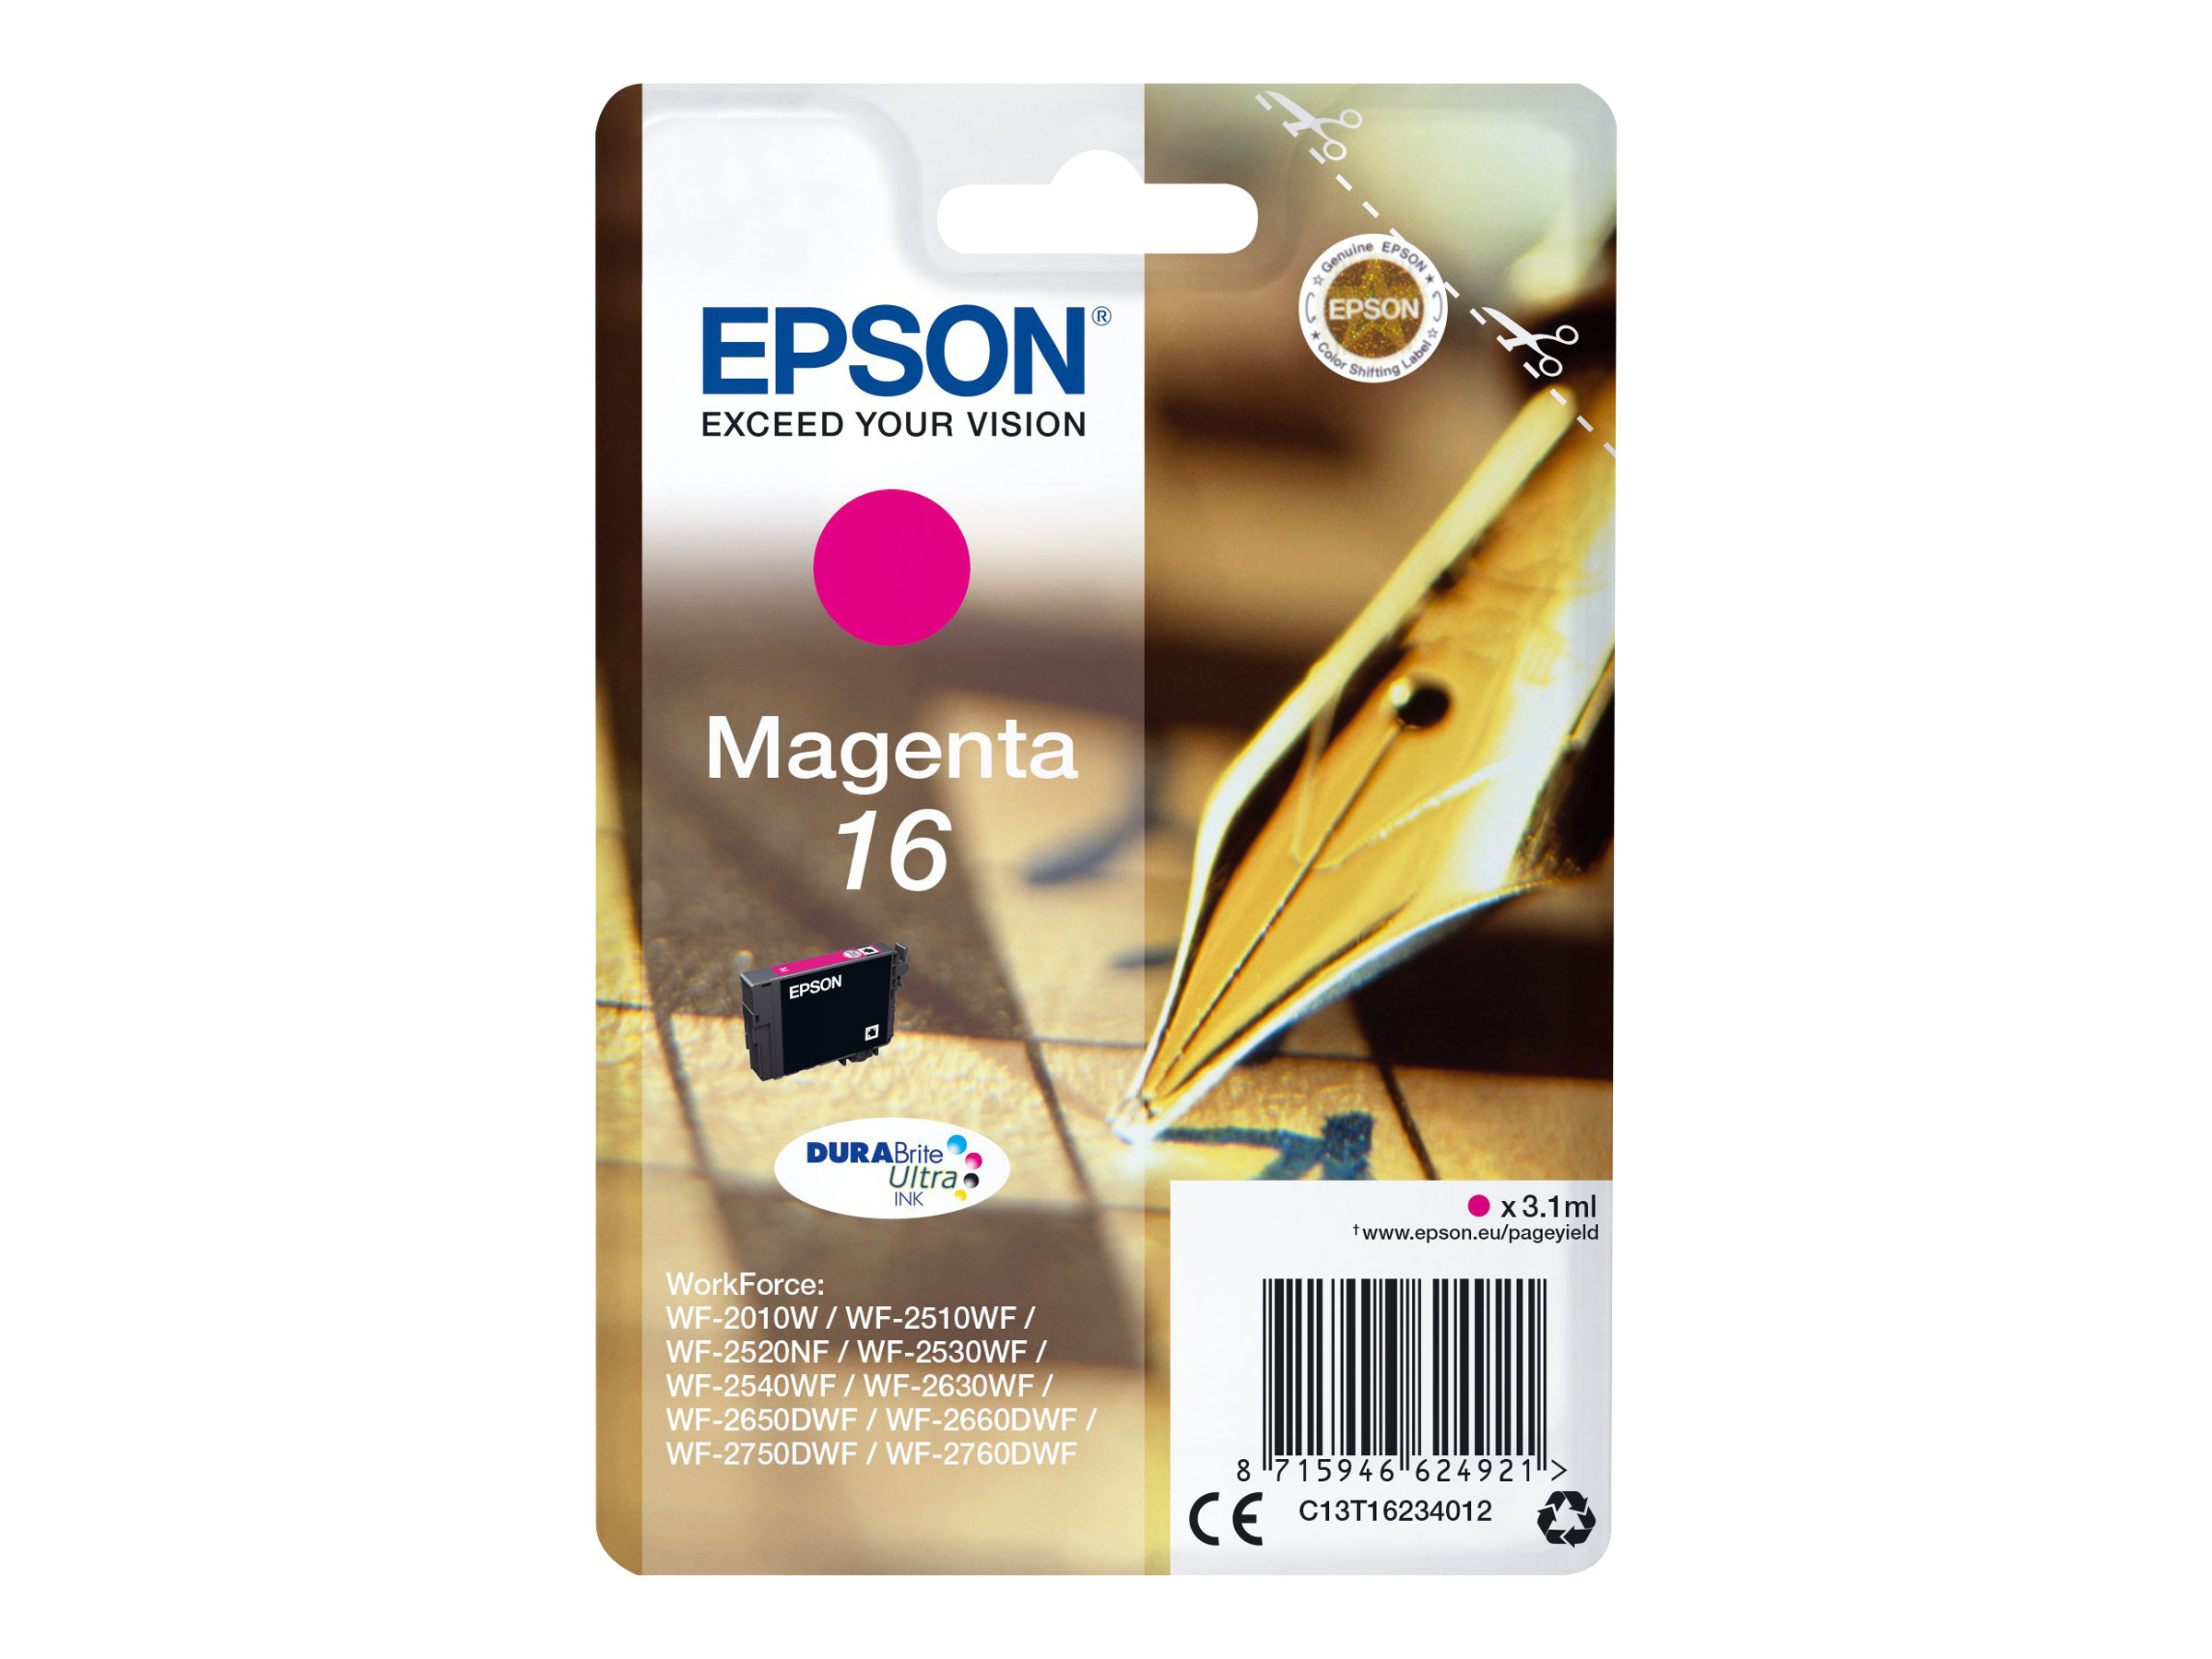 Epson 16 - 3.1 ml - Magenta - Original - Tintenpatrone - für WorkForce WF-2010, 2510, 2520, 2530, 2540, 2630, 2650, 2660, 2750, 2760